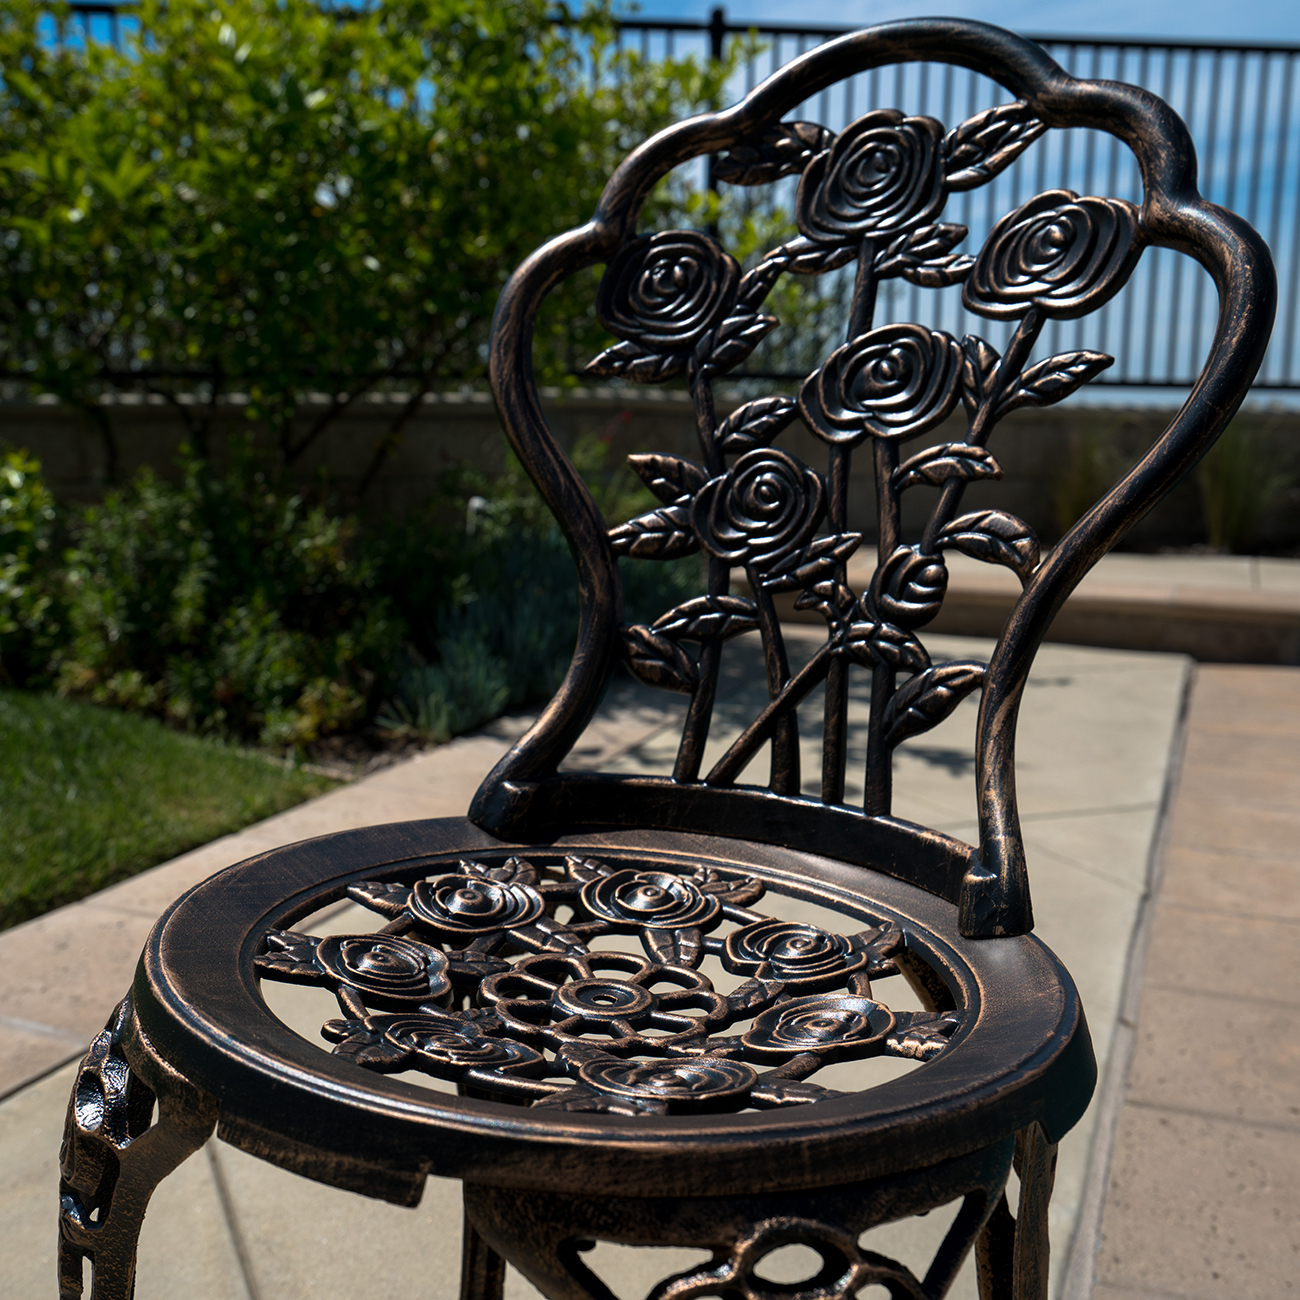 Cast Aluminum Patio Furniture Heart Pattern: 3 PC Bronze Cast Bistro Outdoor Patio Set Rose Iron Design